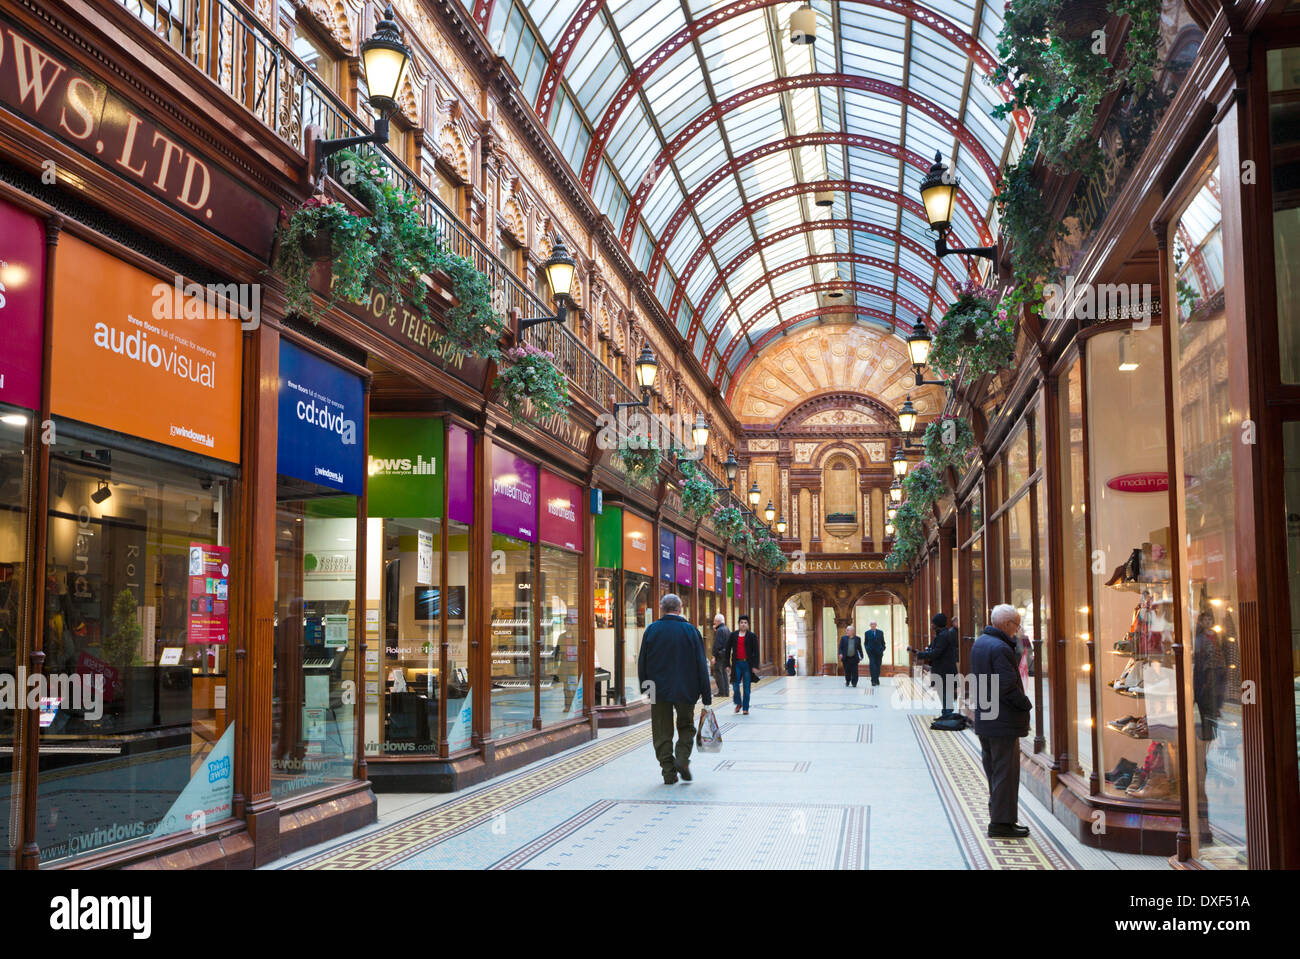 Shops in Central Arcade off Grainger Street city centre Grainger Town Newcastle upon Tyne Tyne and Wear UK GB EU Stock Photo